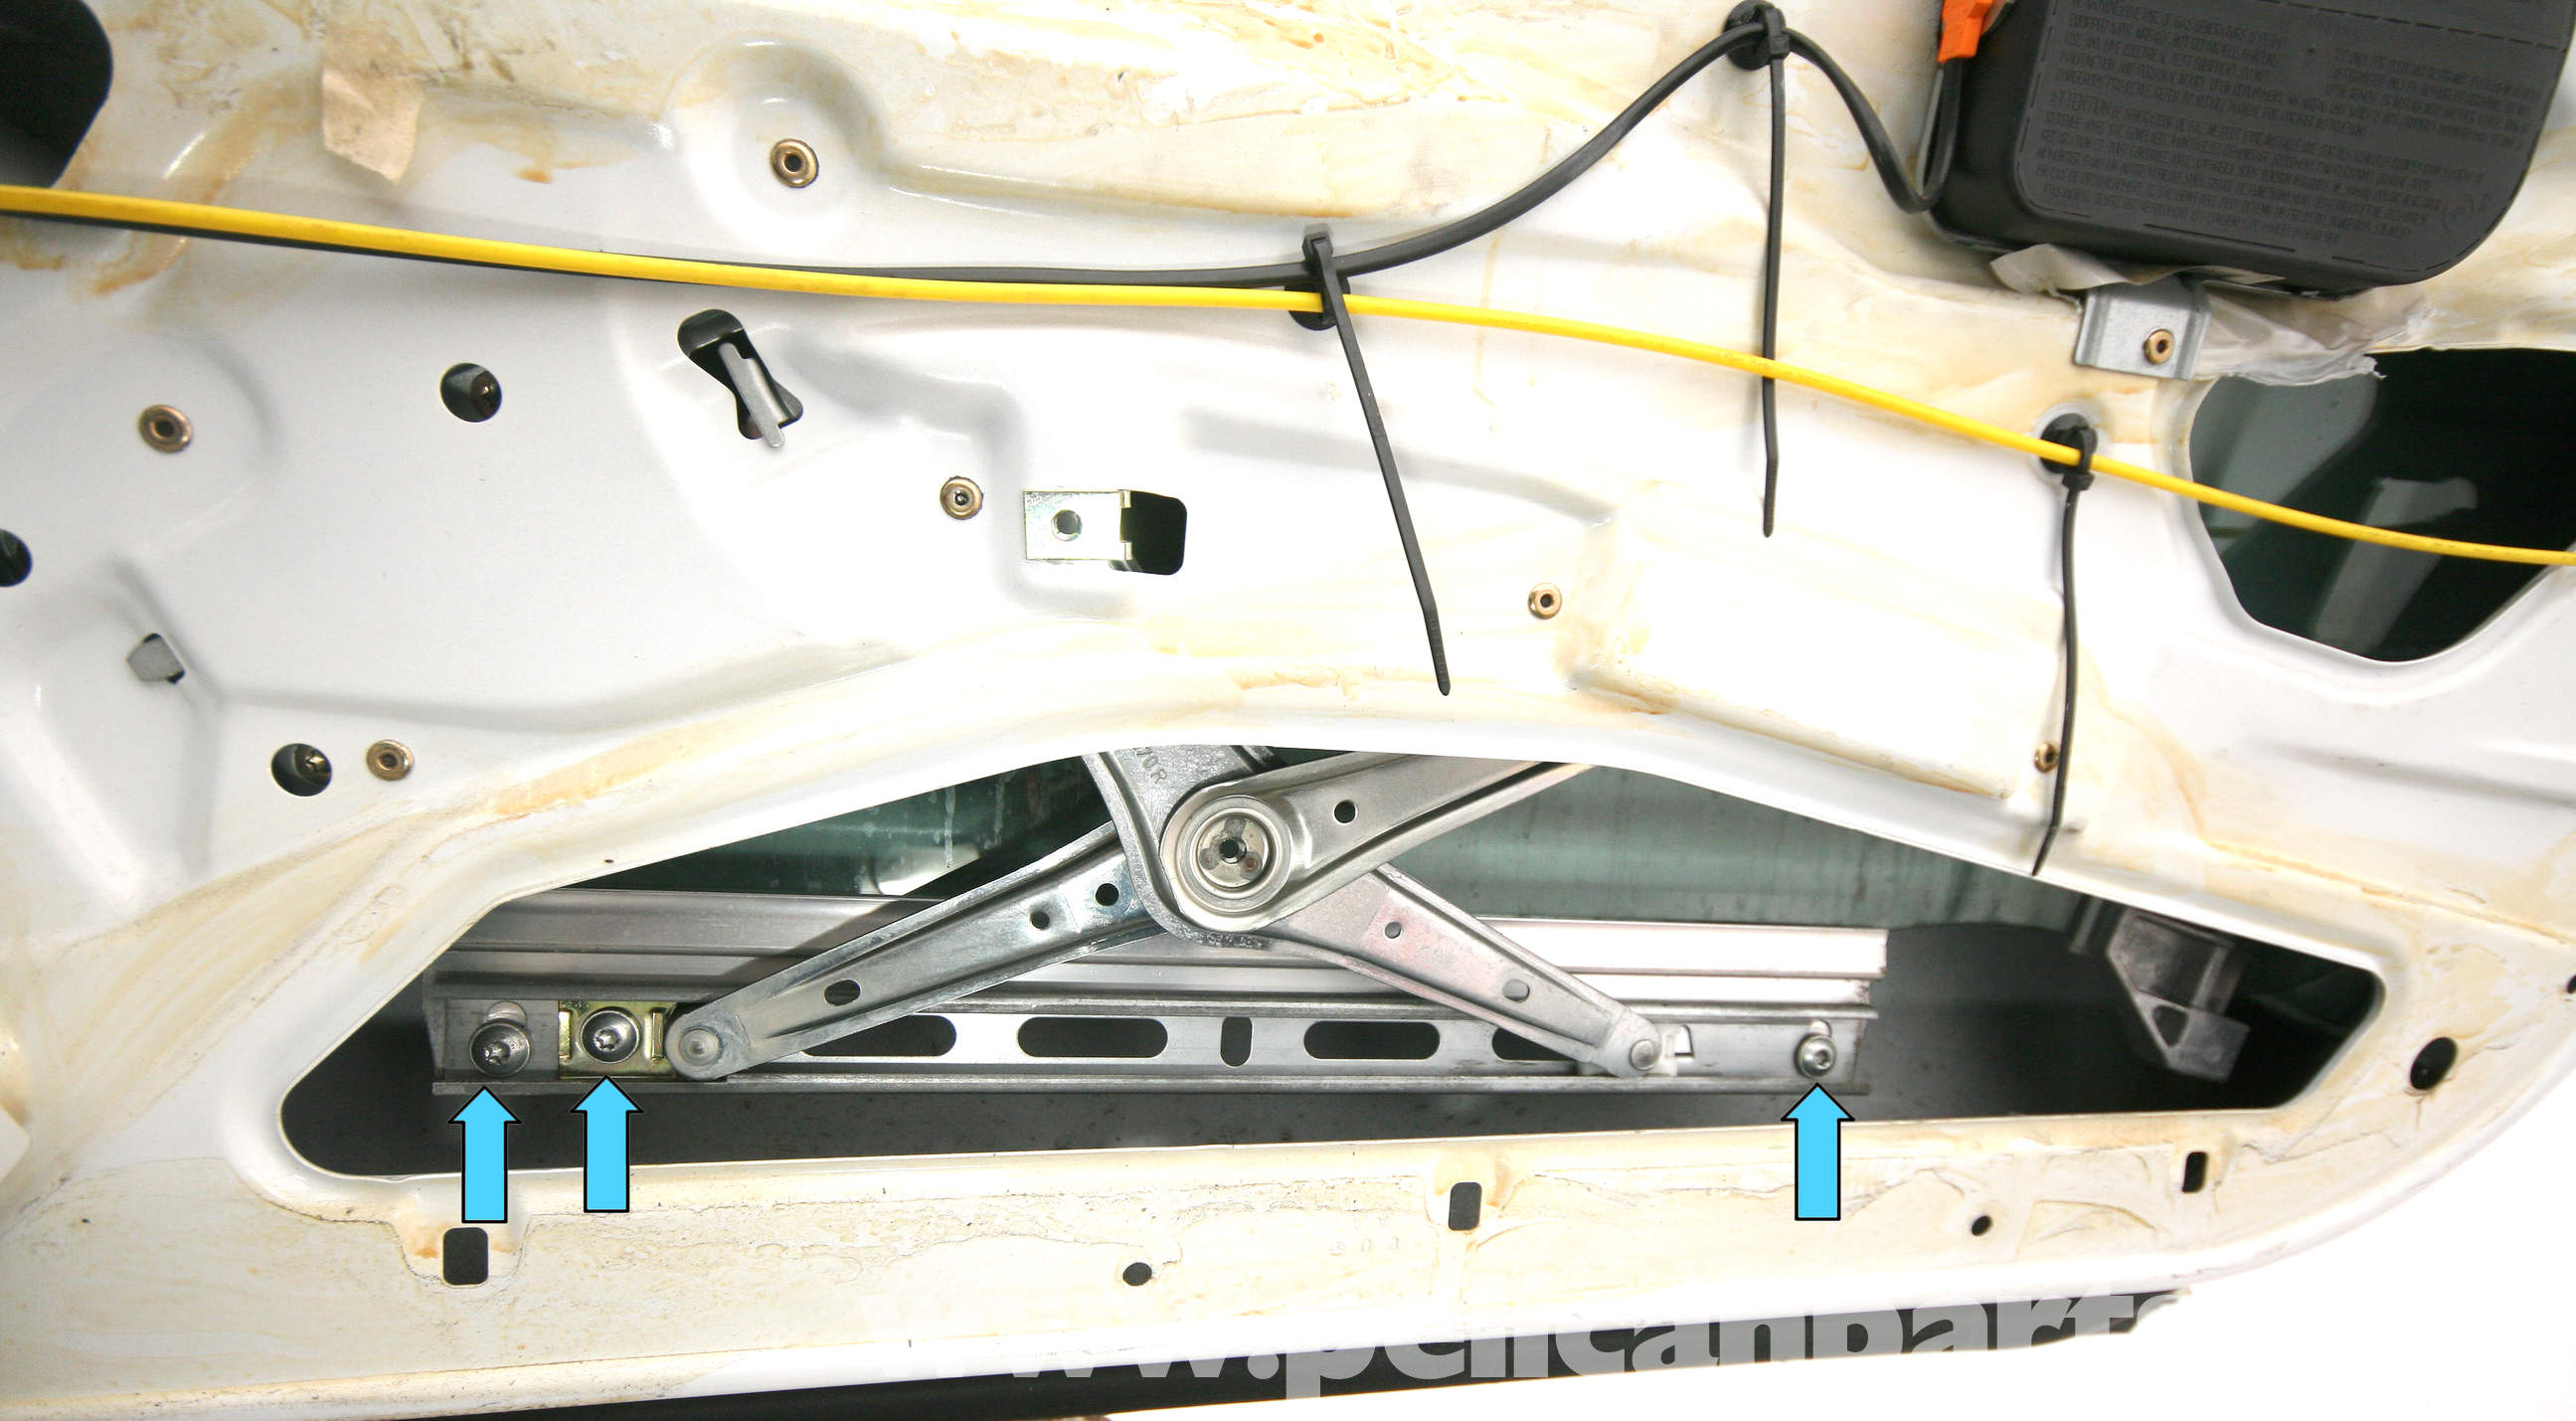 Mercedes benz slk 230 front window replacement 1998 2004 pelican parts diy maintenance article for Mercedes benz replacement parts for the interior